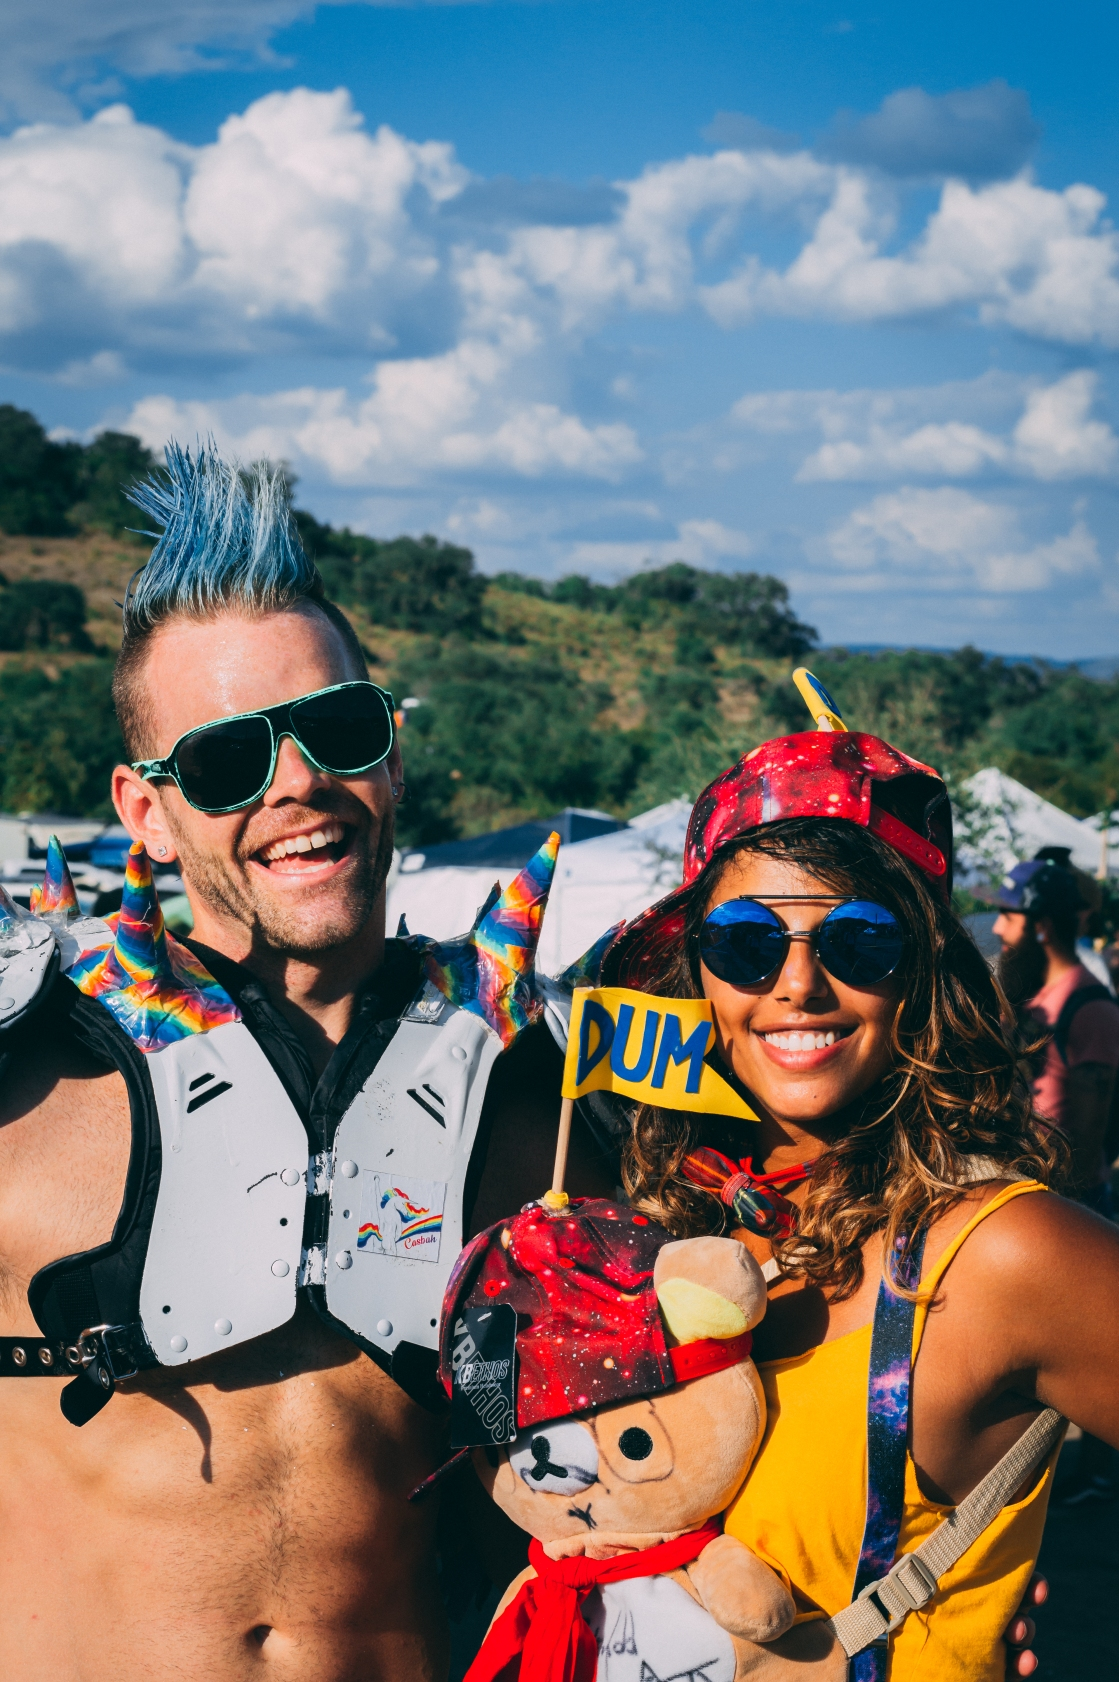 """Decked out in rave gear, ironically, Tommy and Christina don't attend raves too often. """"This kind of music (UTOPiA Fest) is more of her thing,"""" said Tommy."""